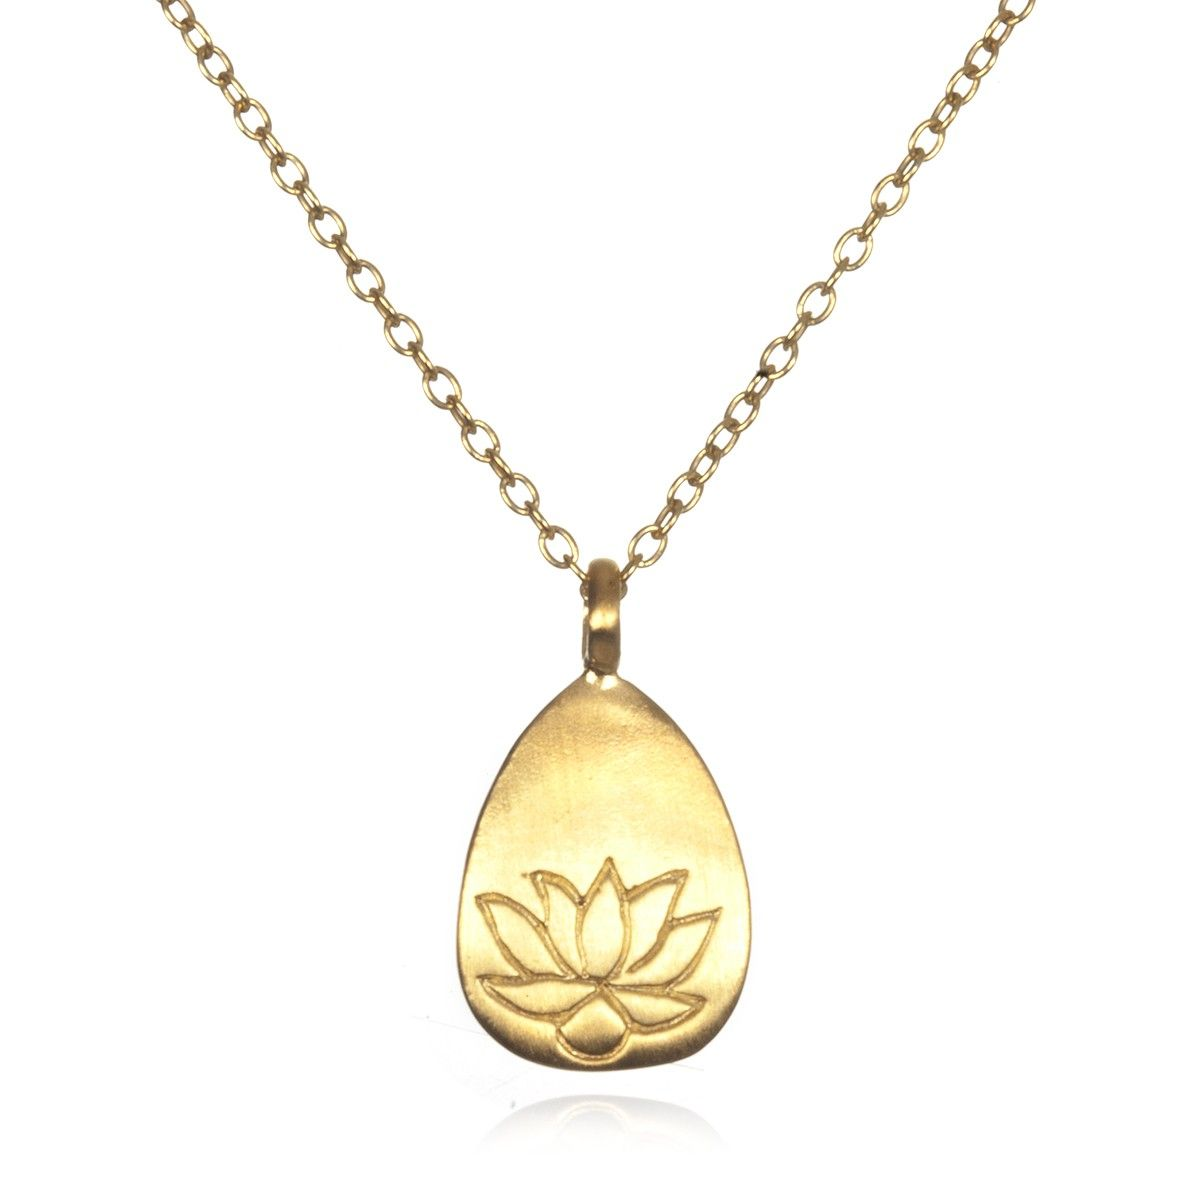 chain with tree l mangotree hammered lotus shop products sivan pendant mango necklace itaiaviran necklaces small